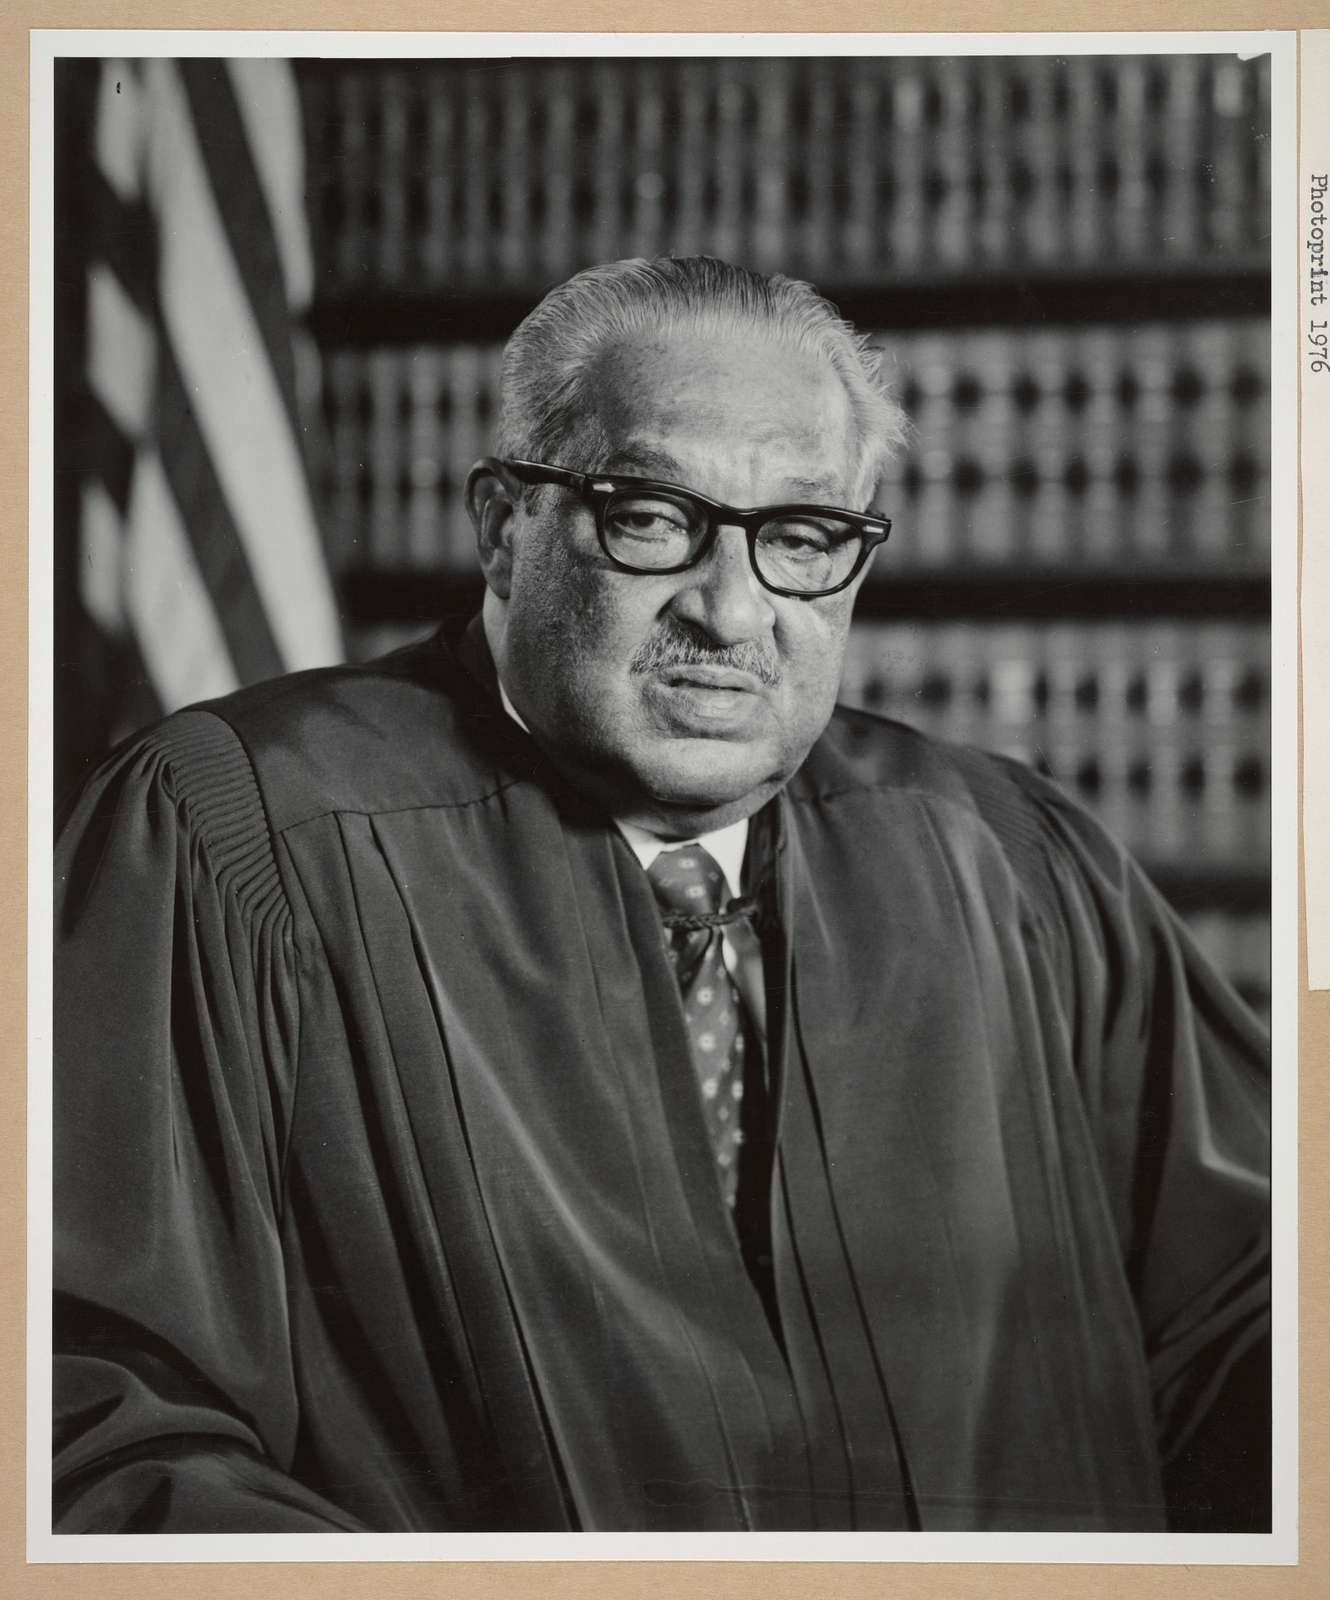 [Official portraits of the 1976 U.S. Supreme Court: Justice Thurgood Marshall]